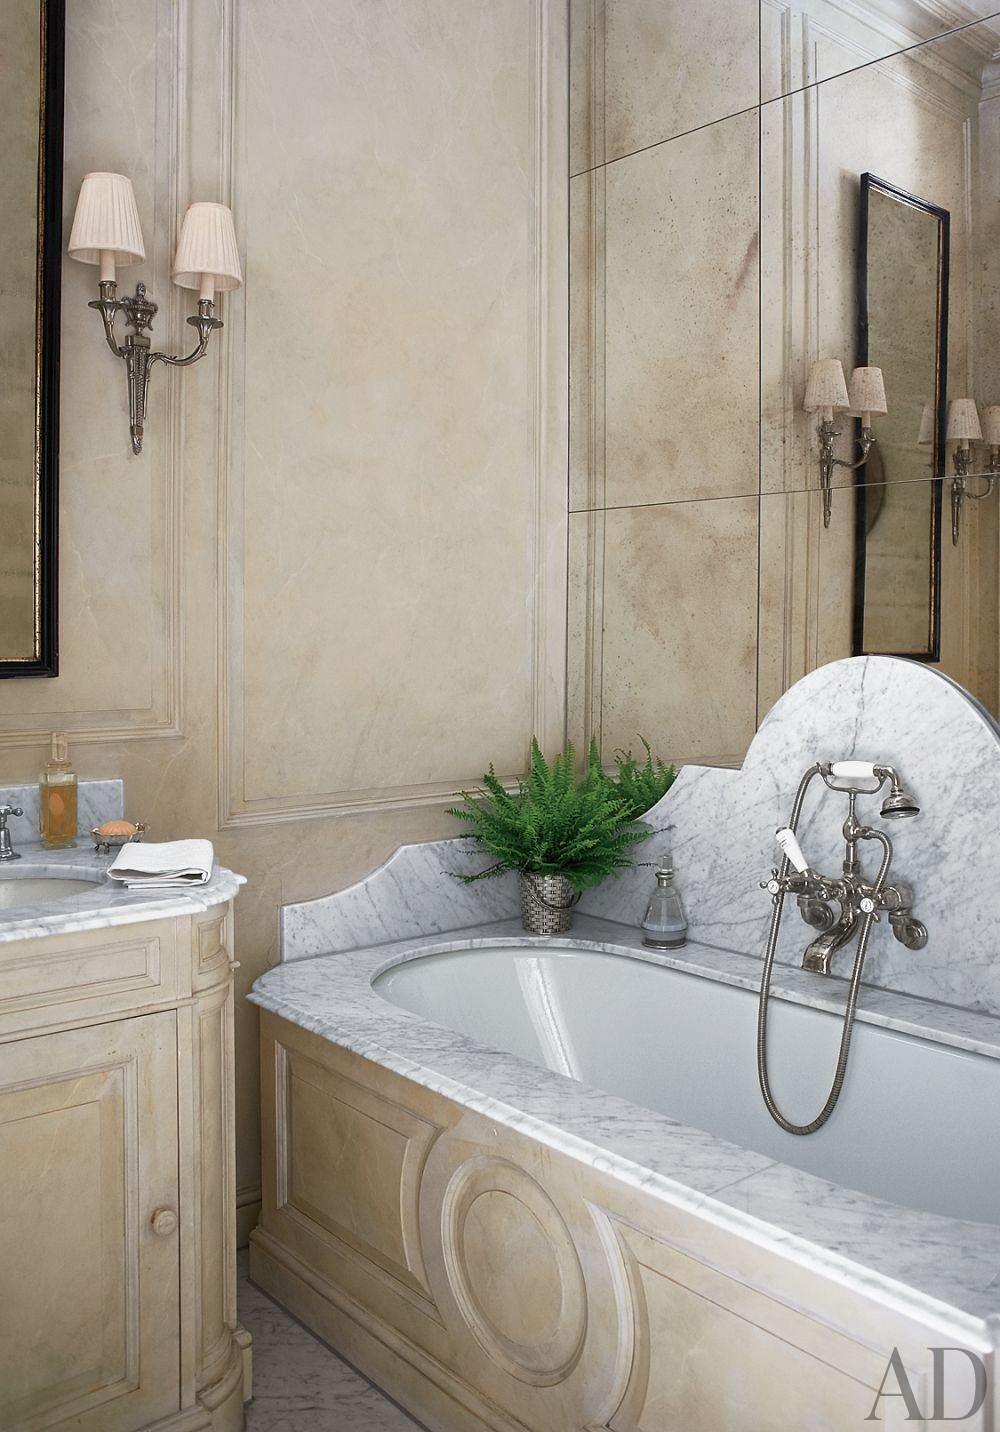 Traditional Bathroom by Paolo Moschino and Philip Vergeylen in London, England